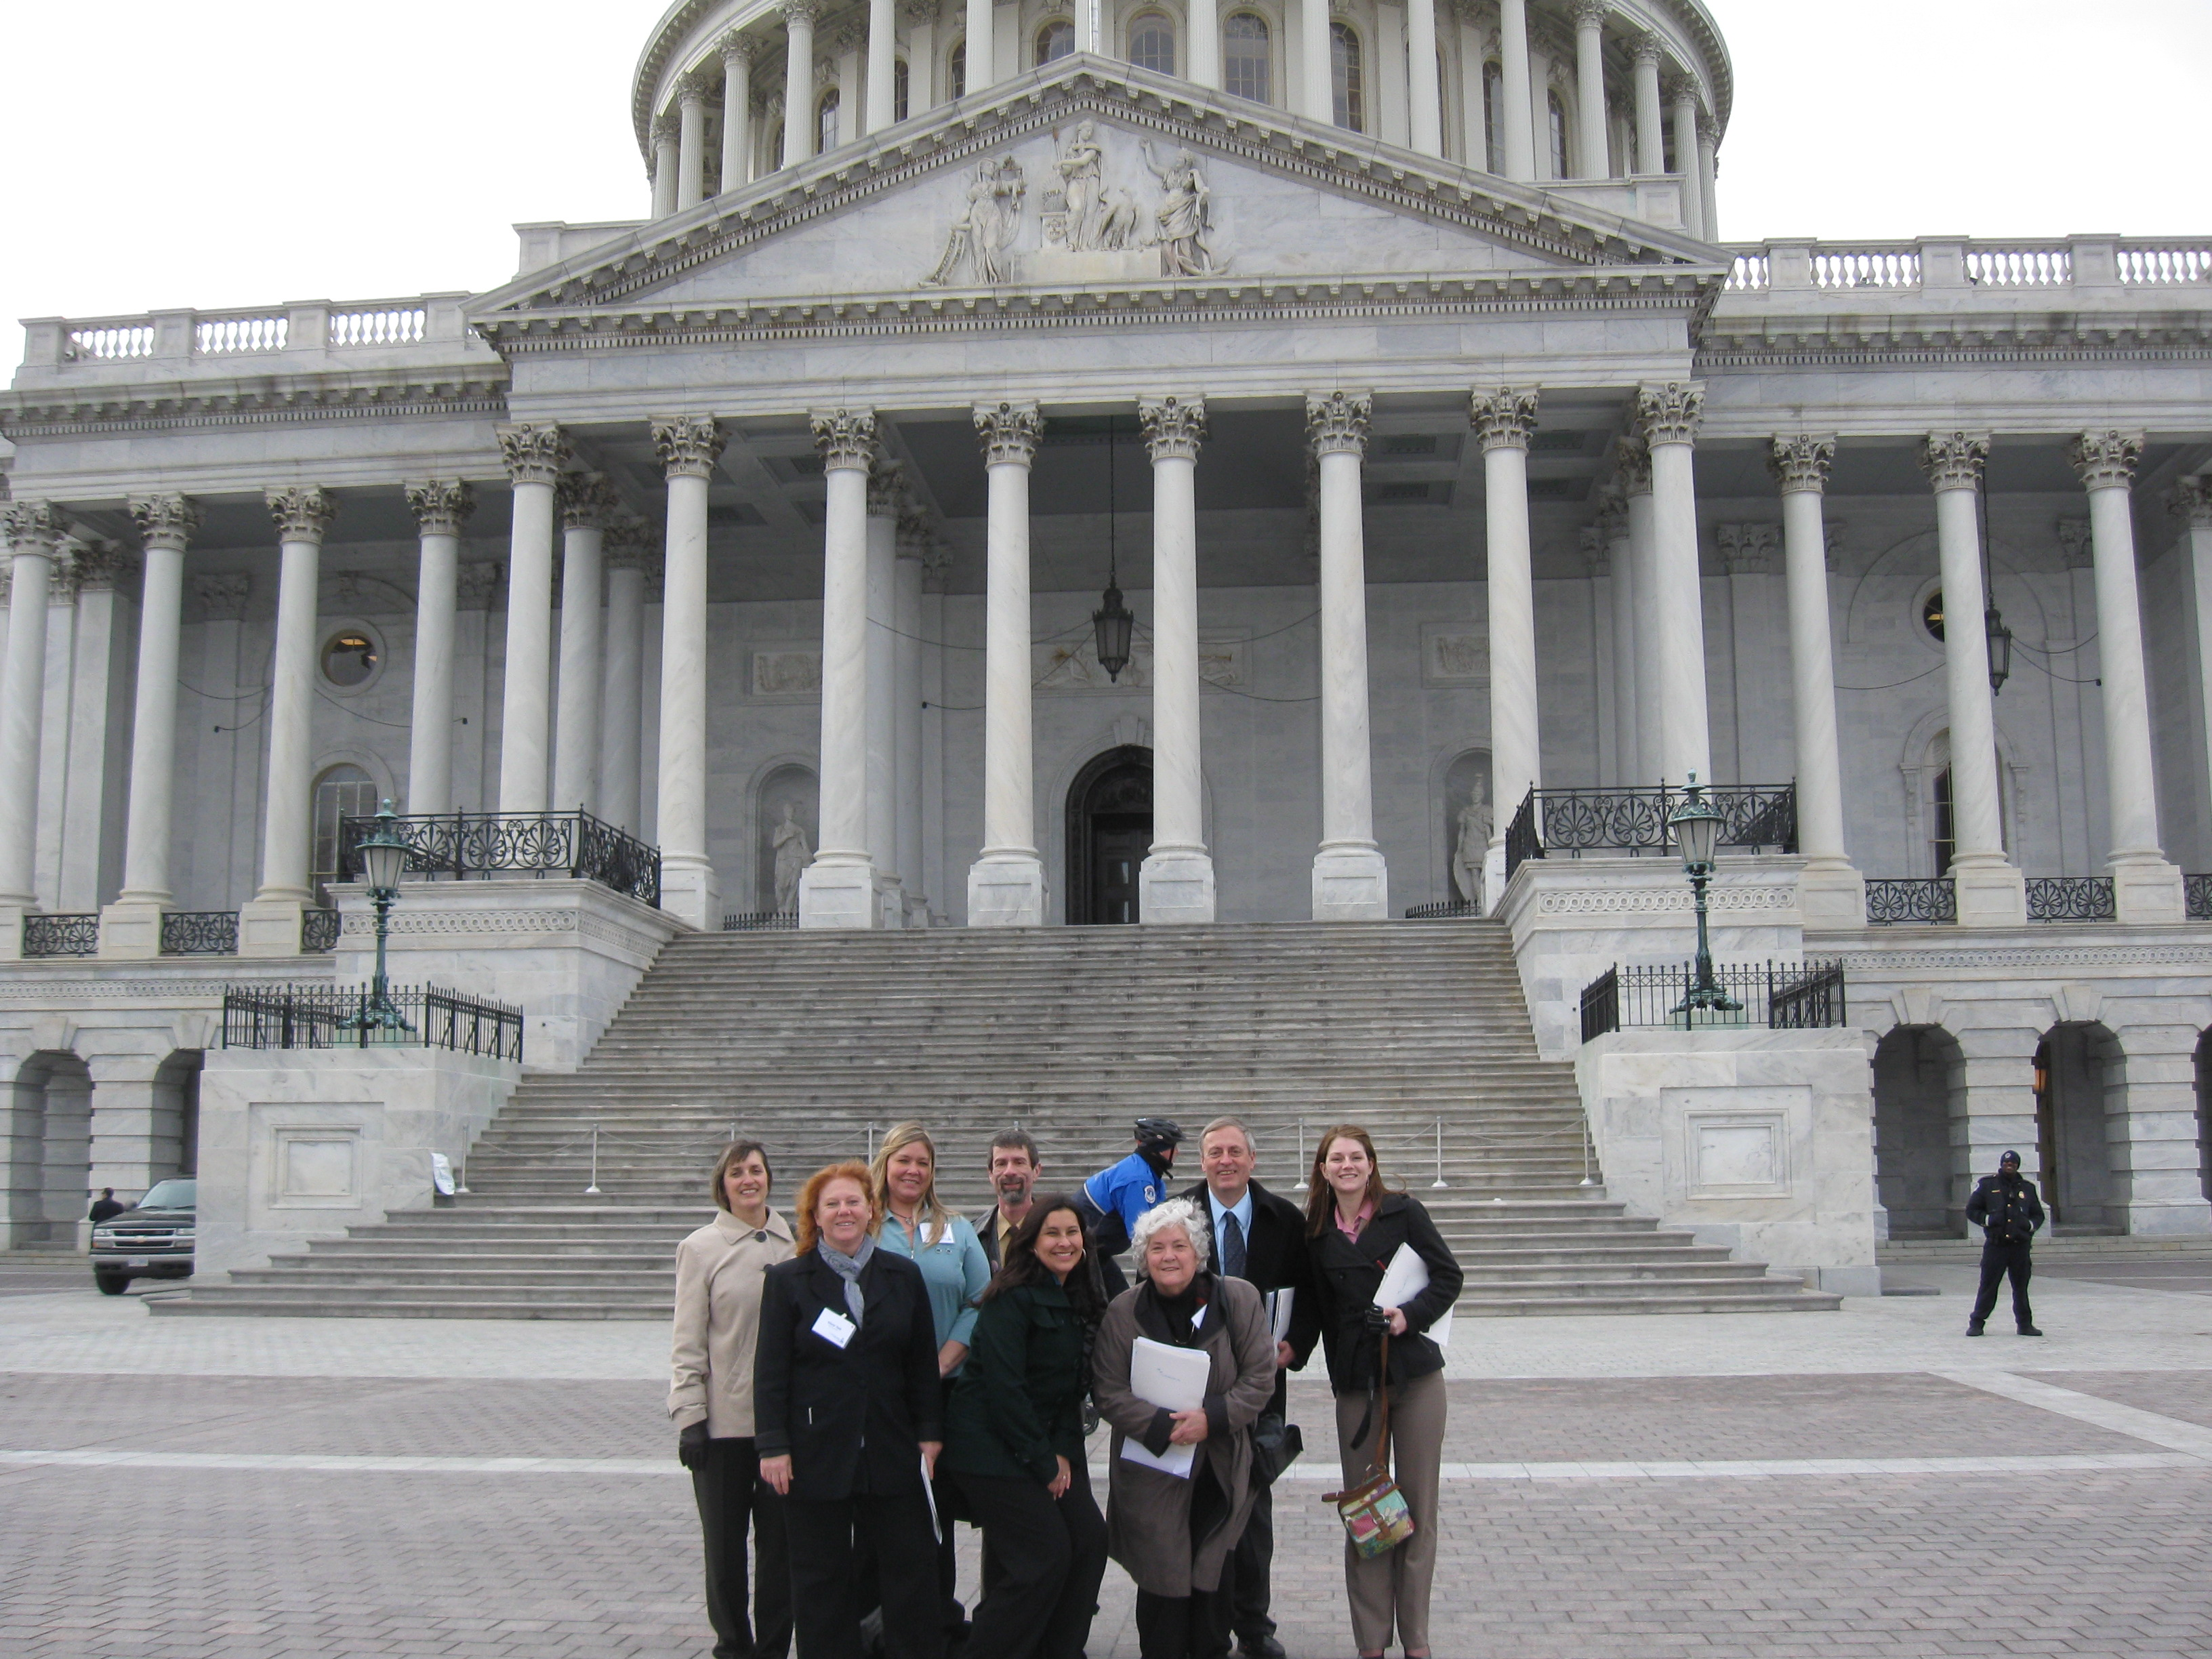 Capitol Building Photo Op for Clean Water Group Representing NE Indiana